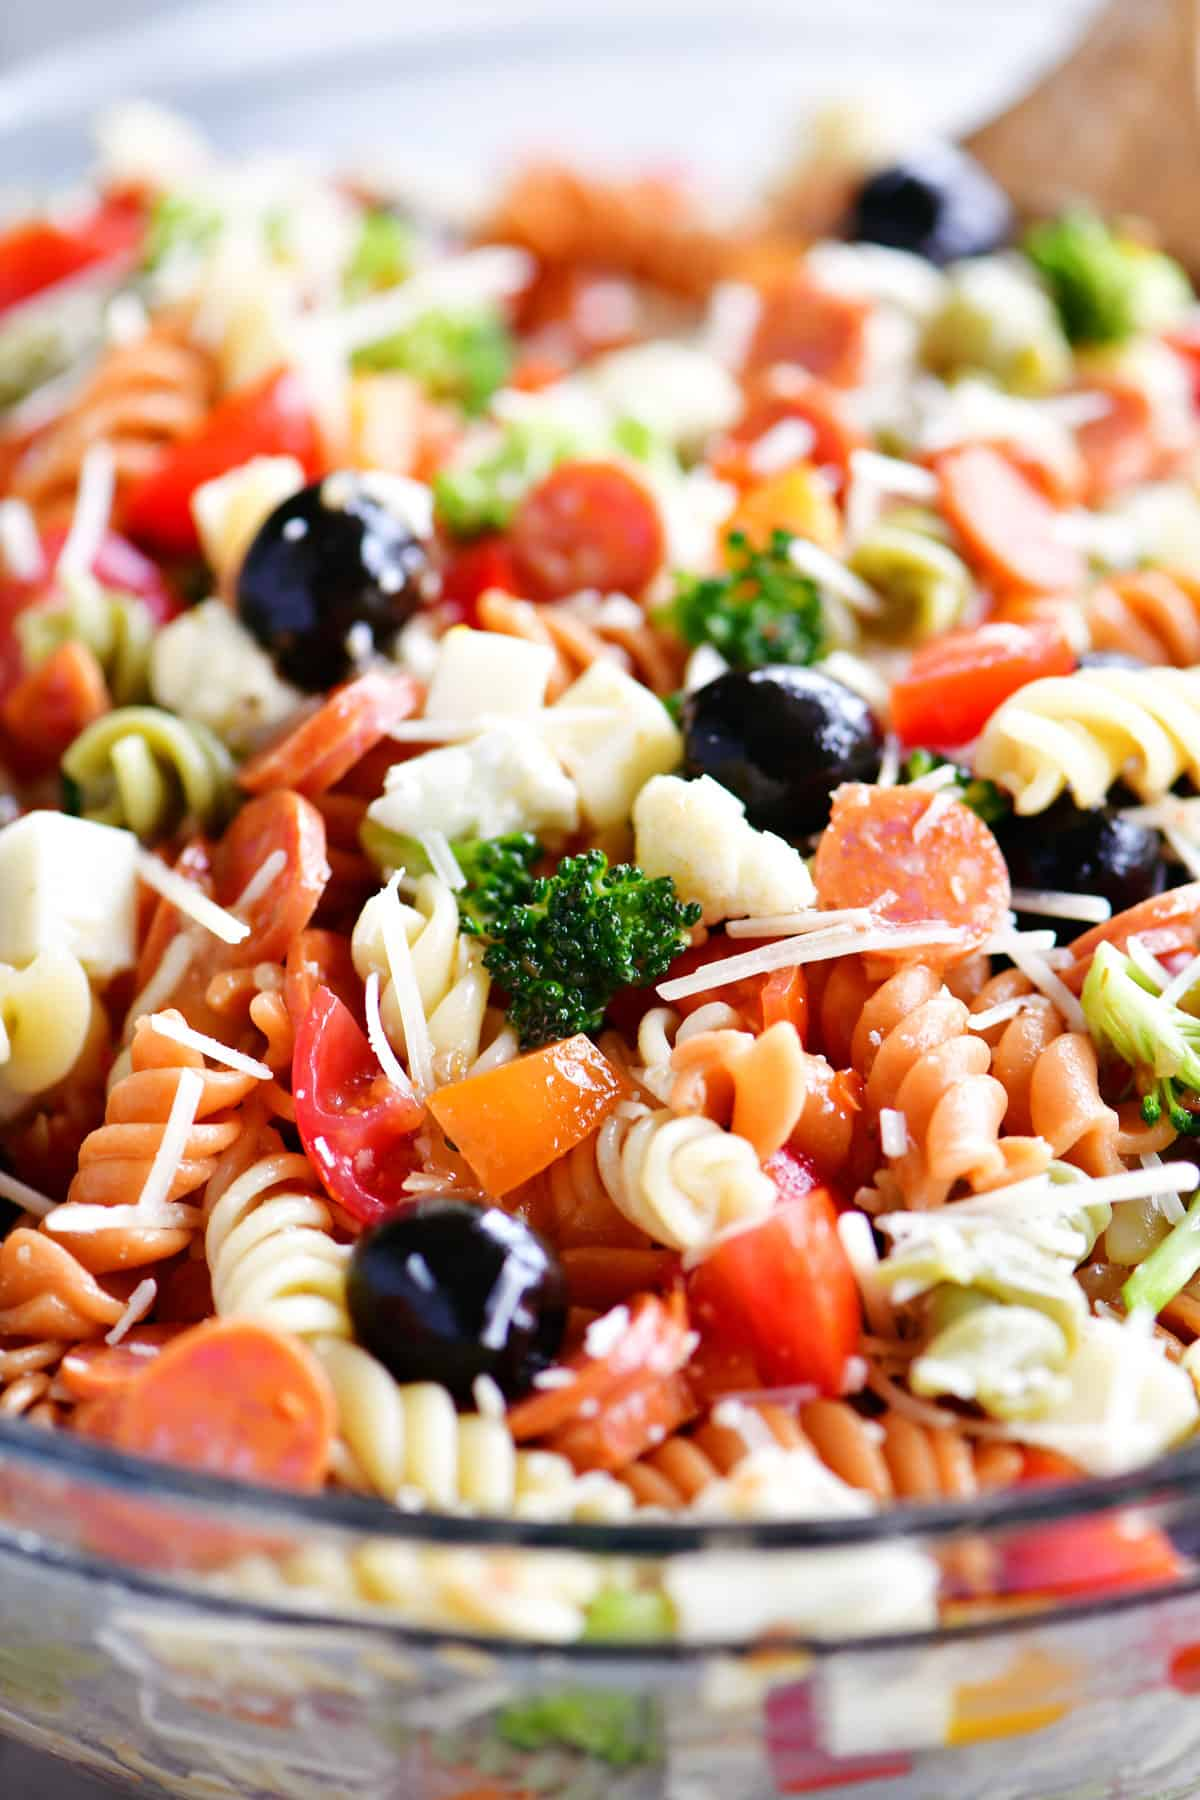 Italian pasta salad in a bowl